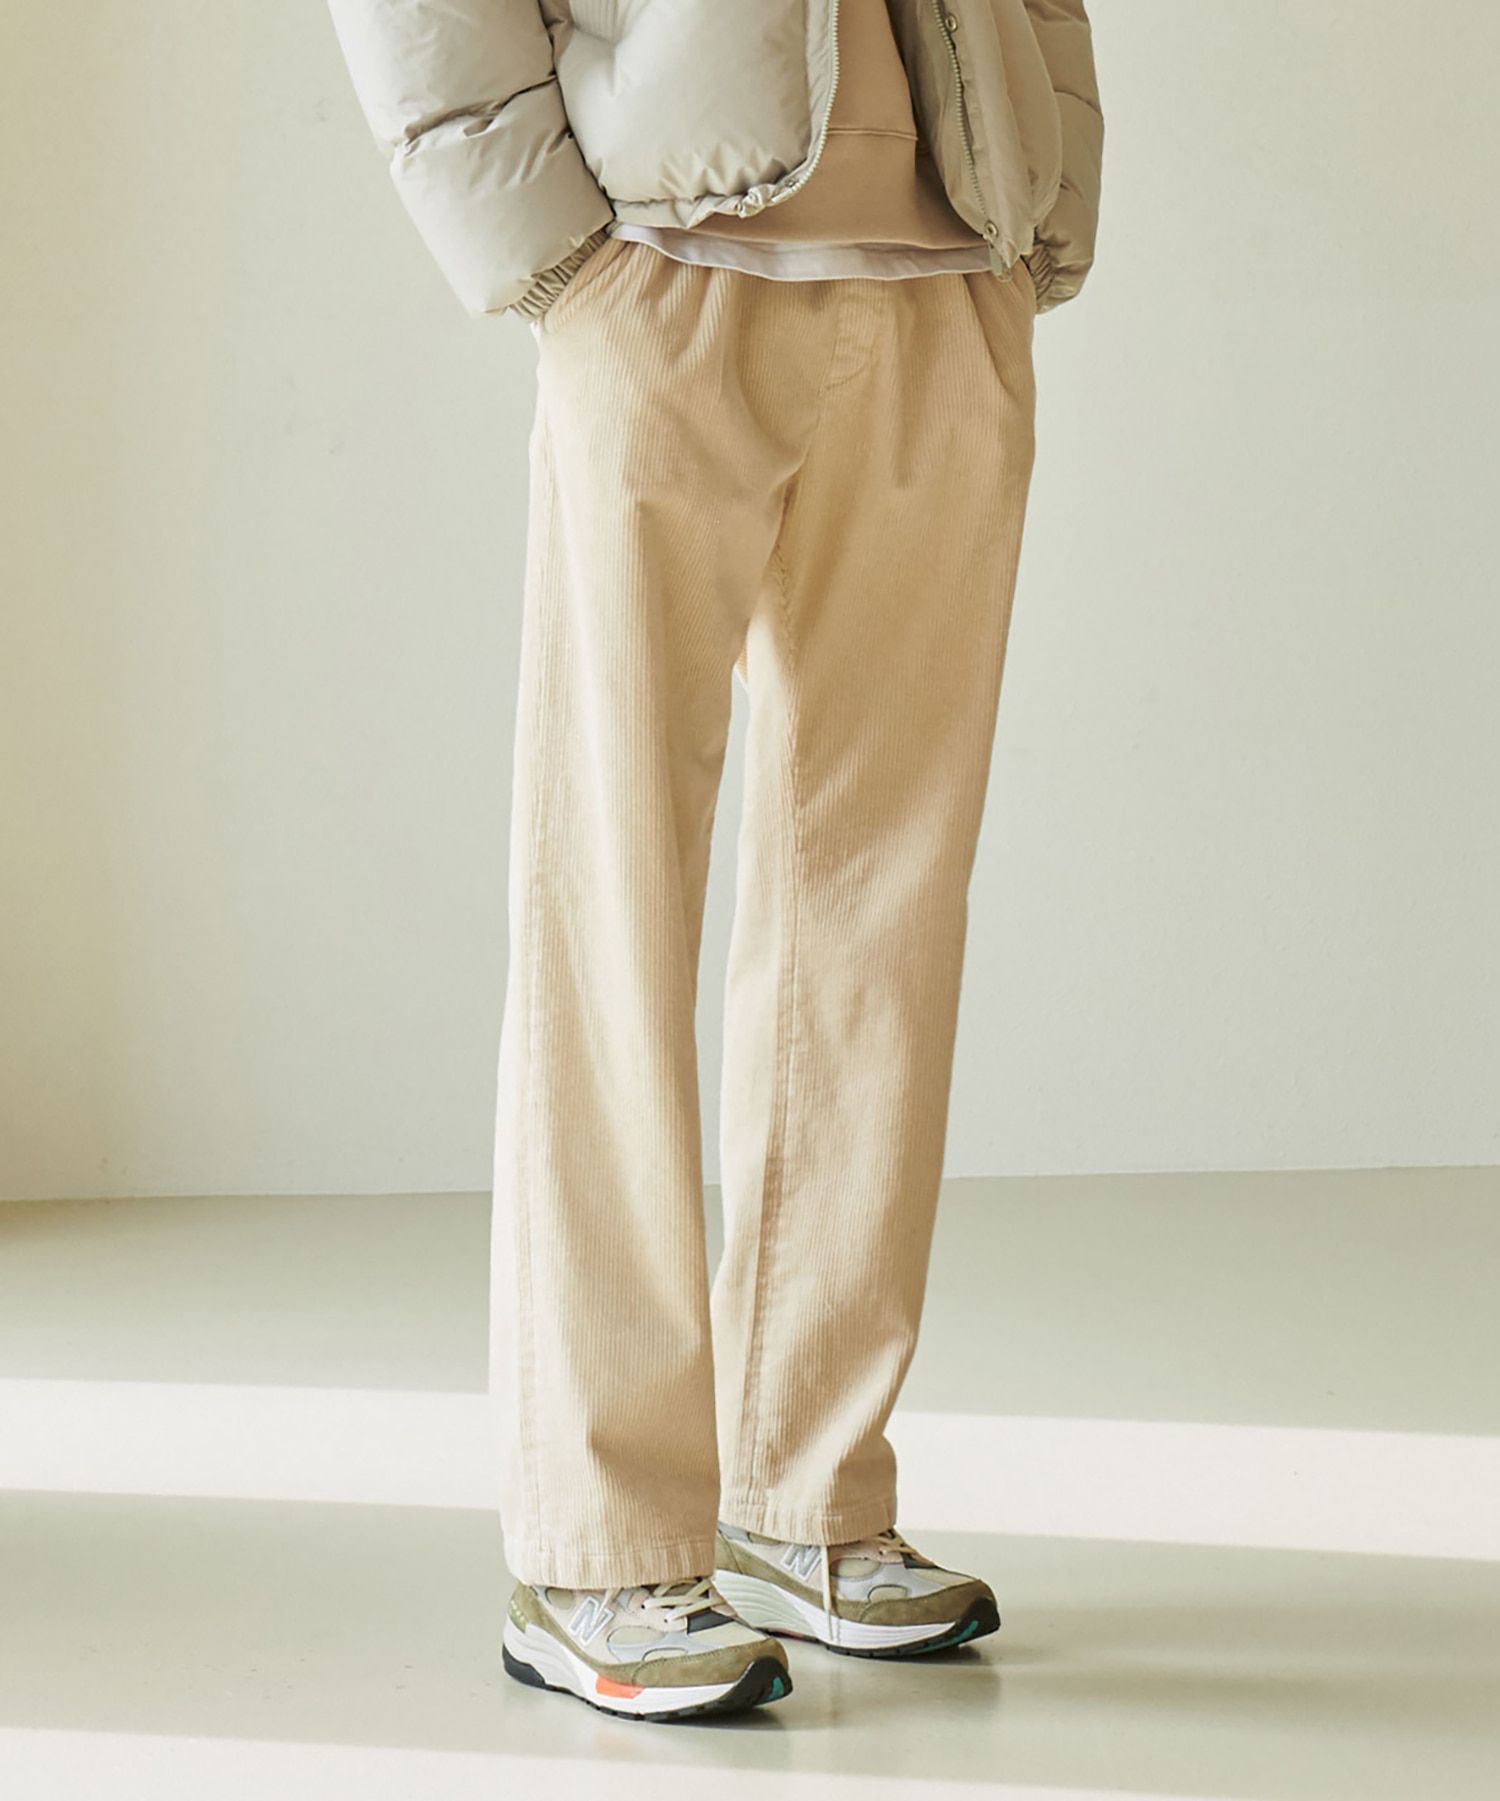 CP-209 8W-Coduroy Pants_CR